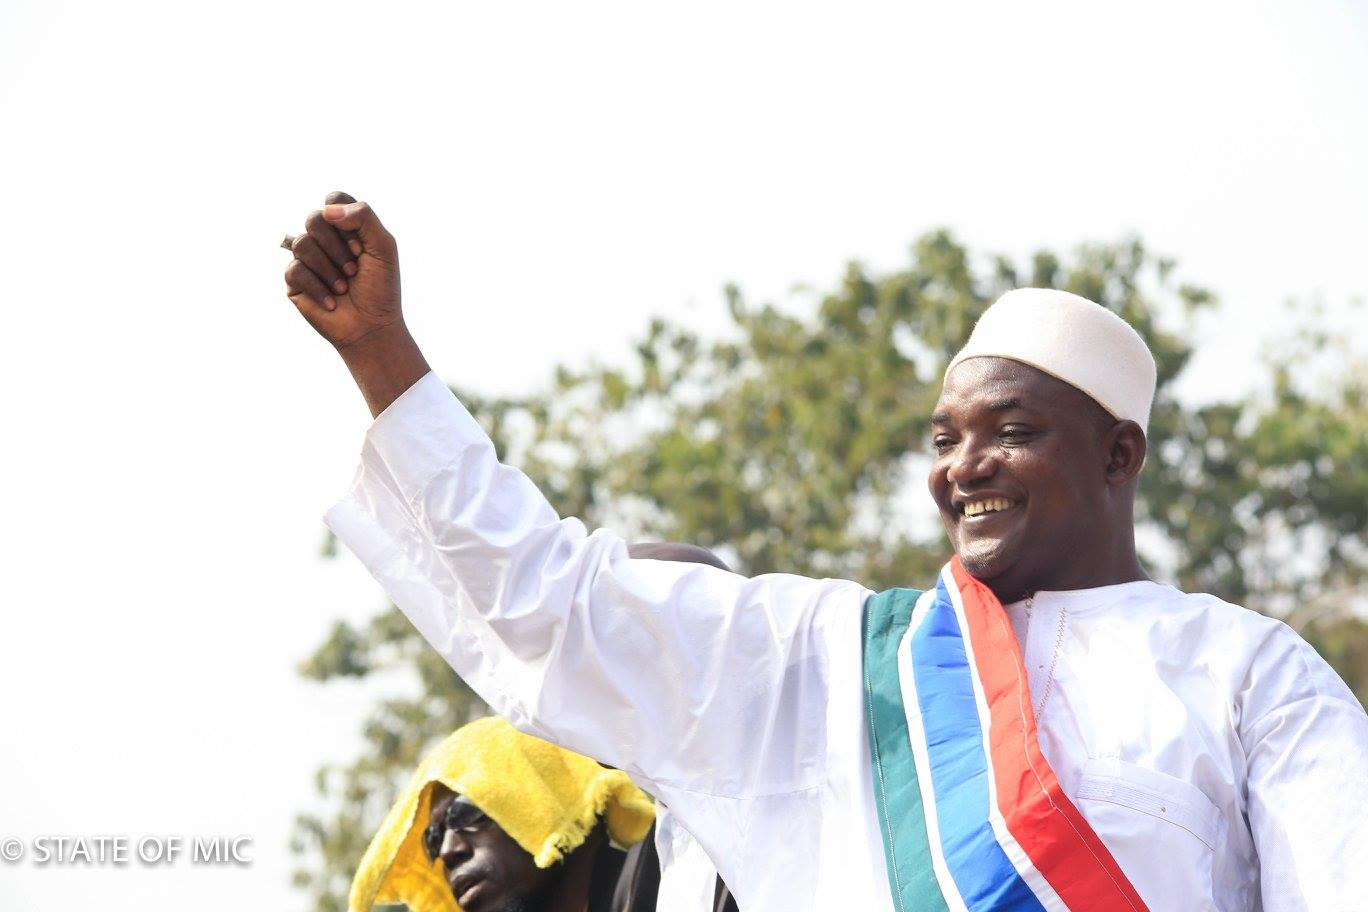 The Gambia's current President, Adama Barrow